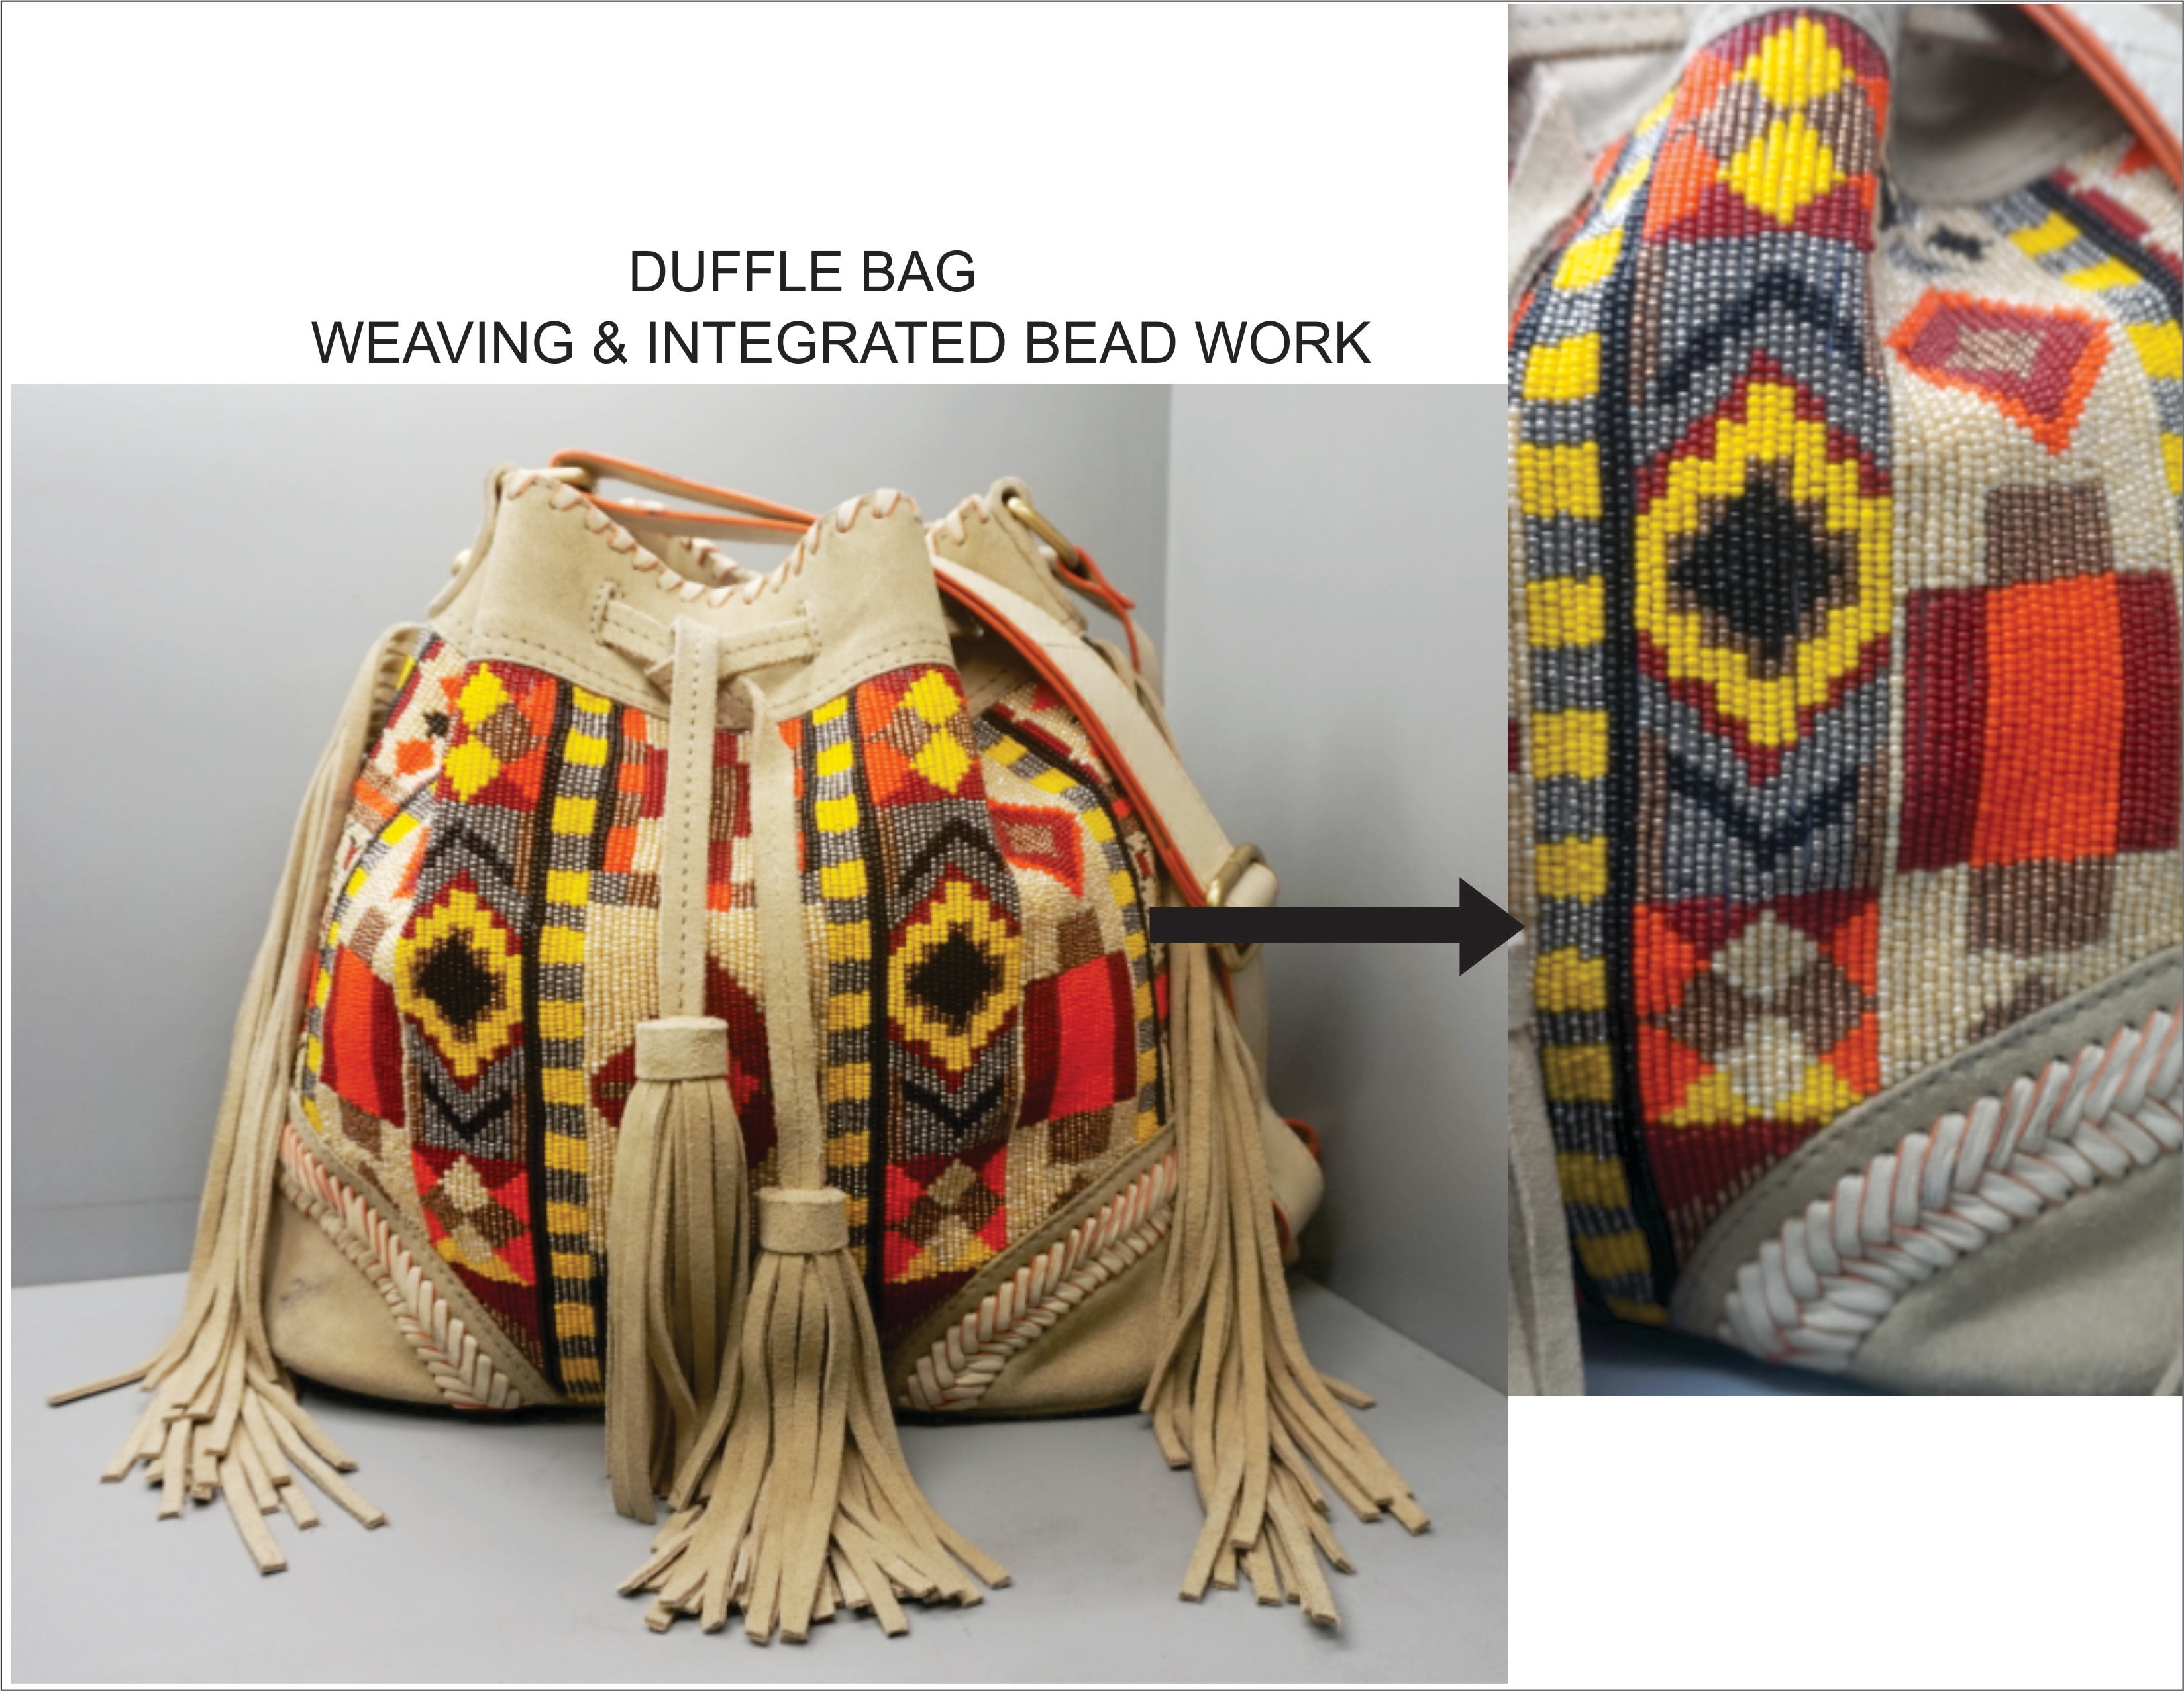 Manufacturer & Exporter Hi Fashion Leather , Fabric handbags and,  Small Leather Goods  Soft Cow leather Duffle Bag with weaving & Integrated Bead work  New Update Style by Bazaar Design team.